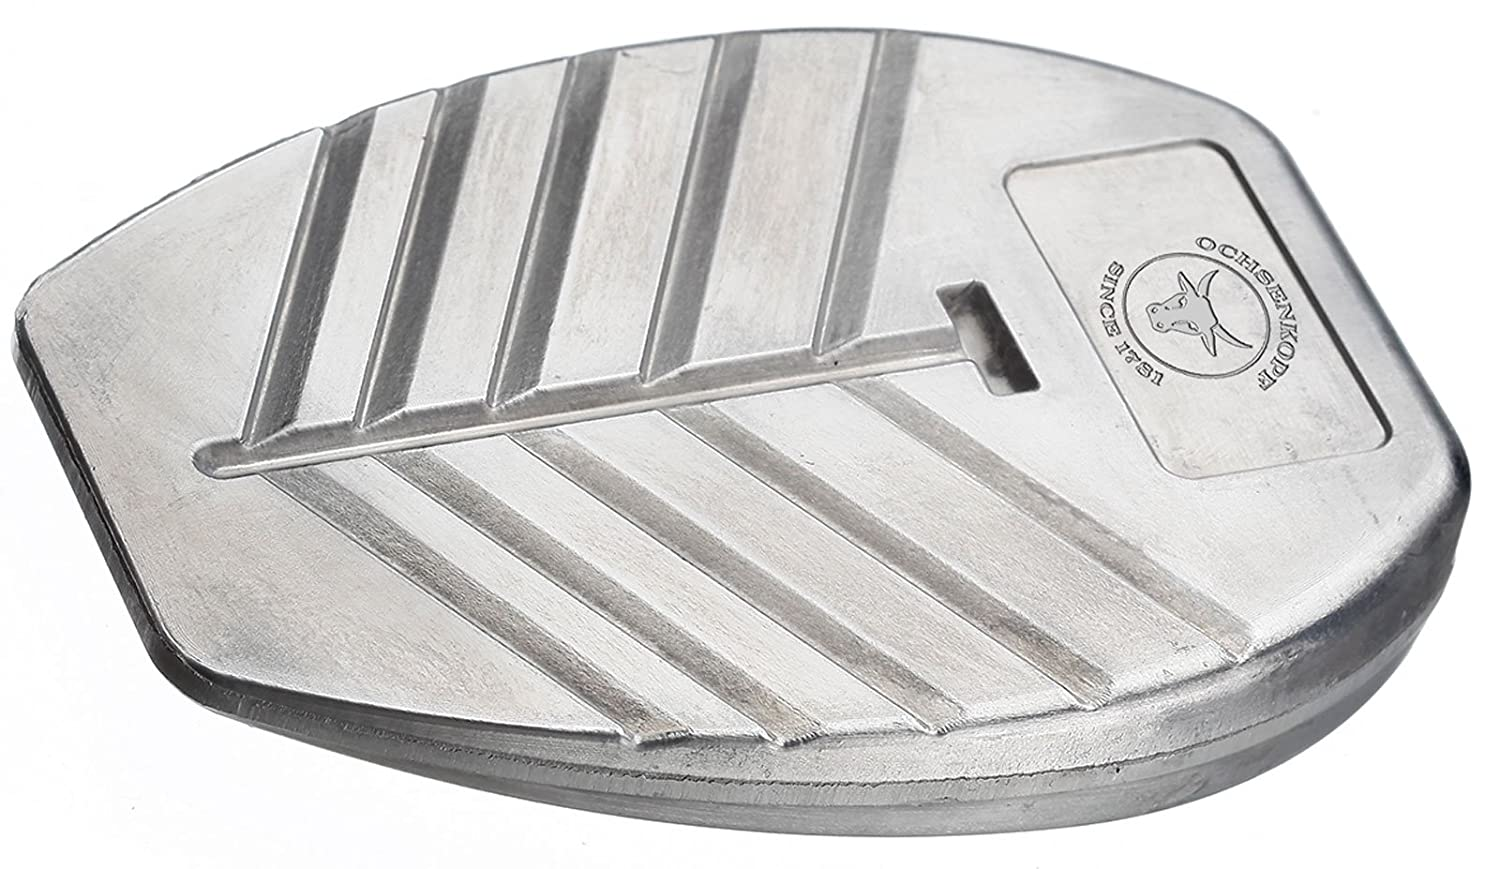 Ochsenkopf OX 43 – 0510 Aluminium Chainsaw Cutting Wedge OX 43-0510